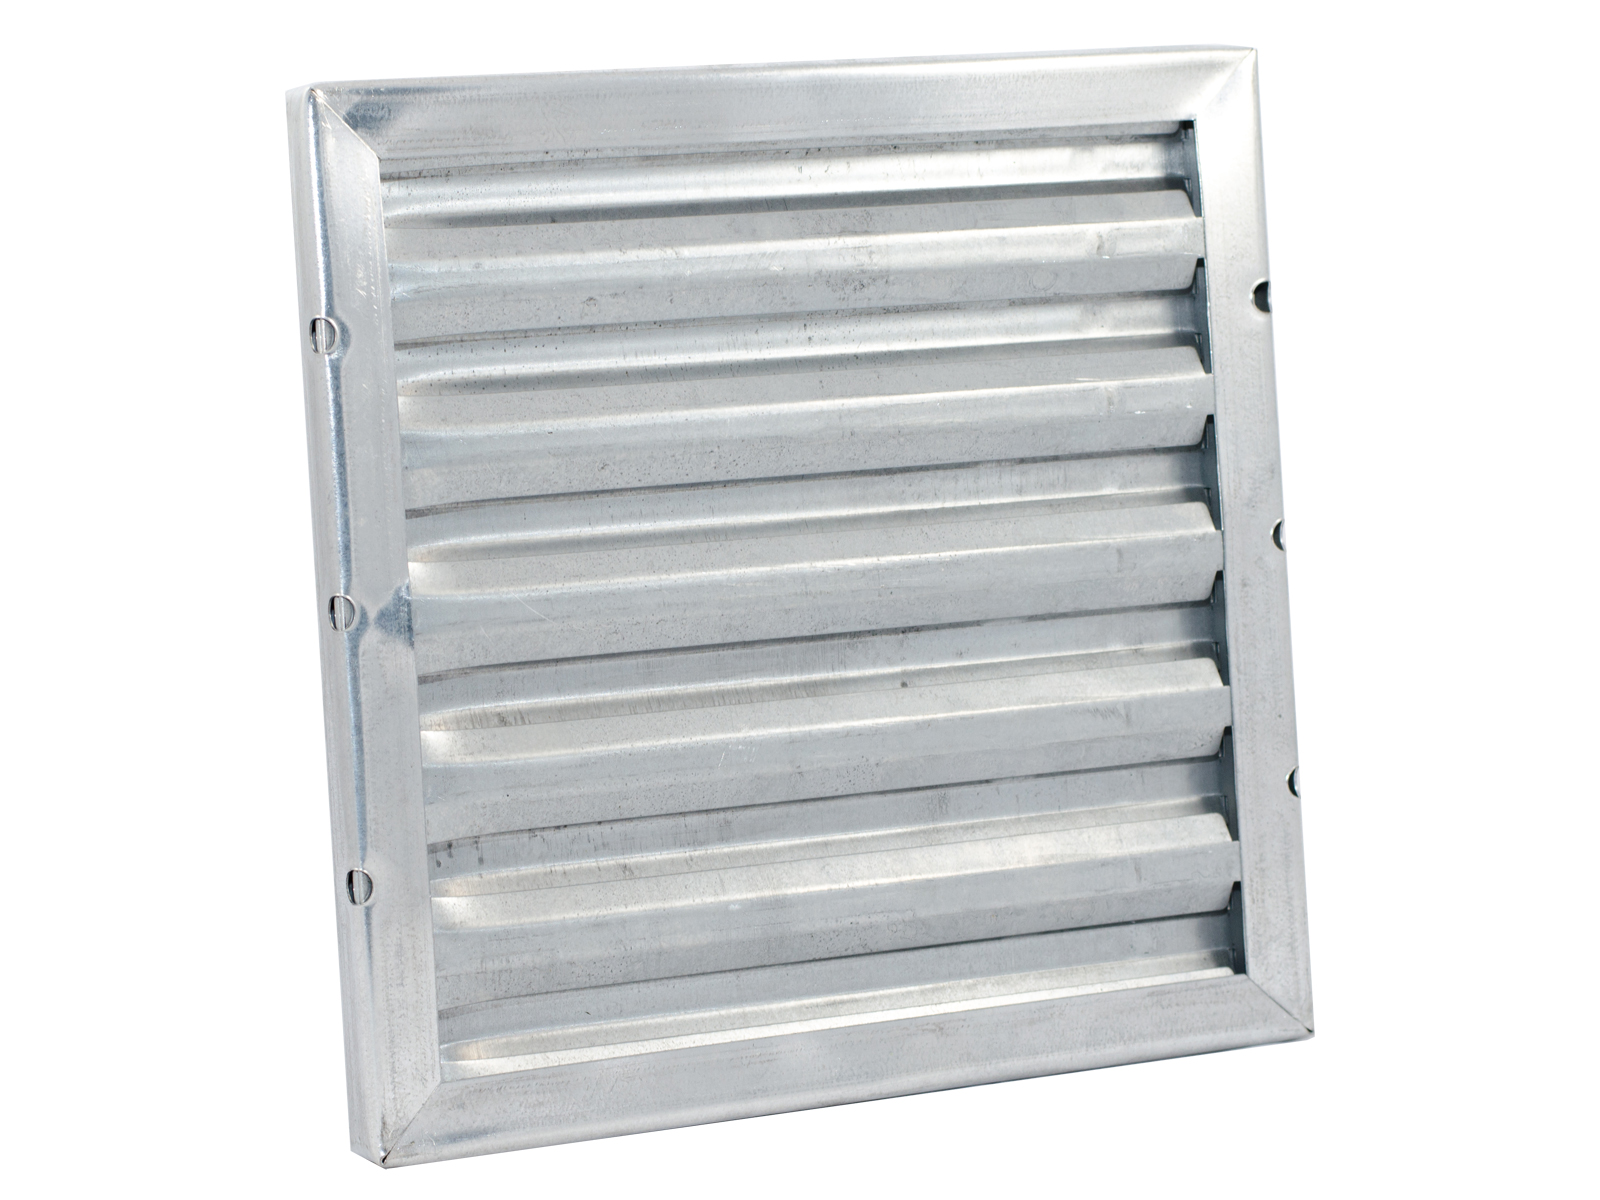 Exhaust Hood Filters ~ Grease filters exhaust hood guide according to nafa